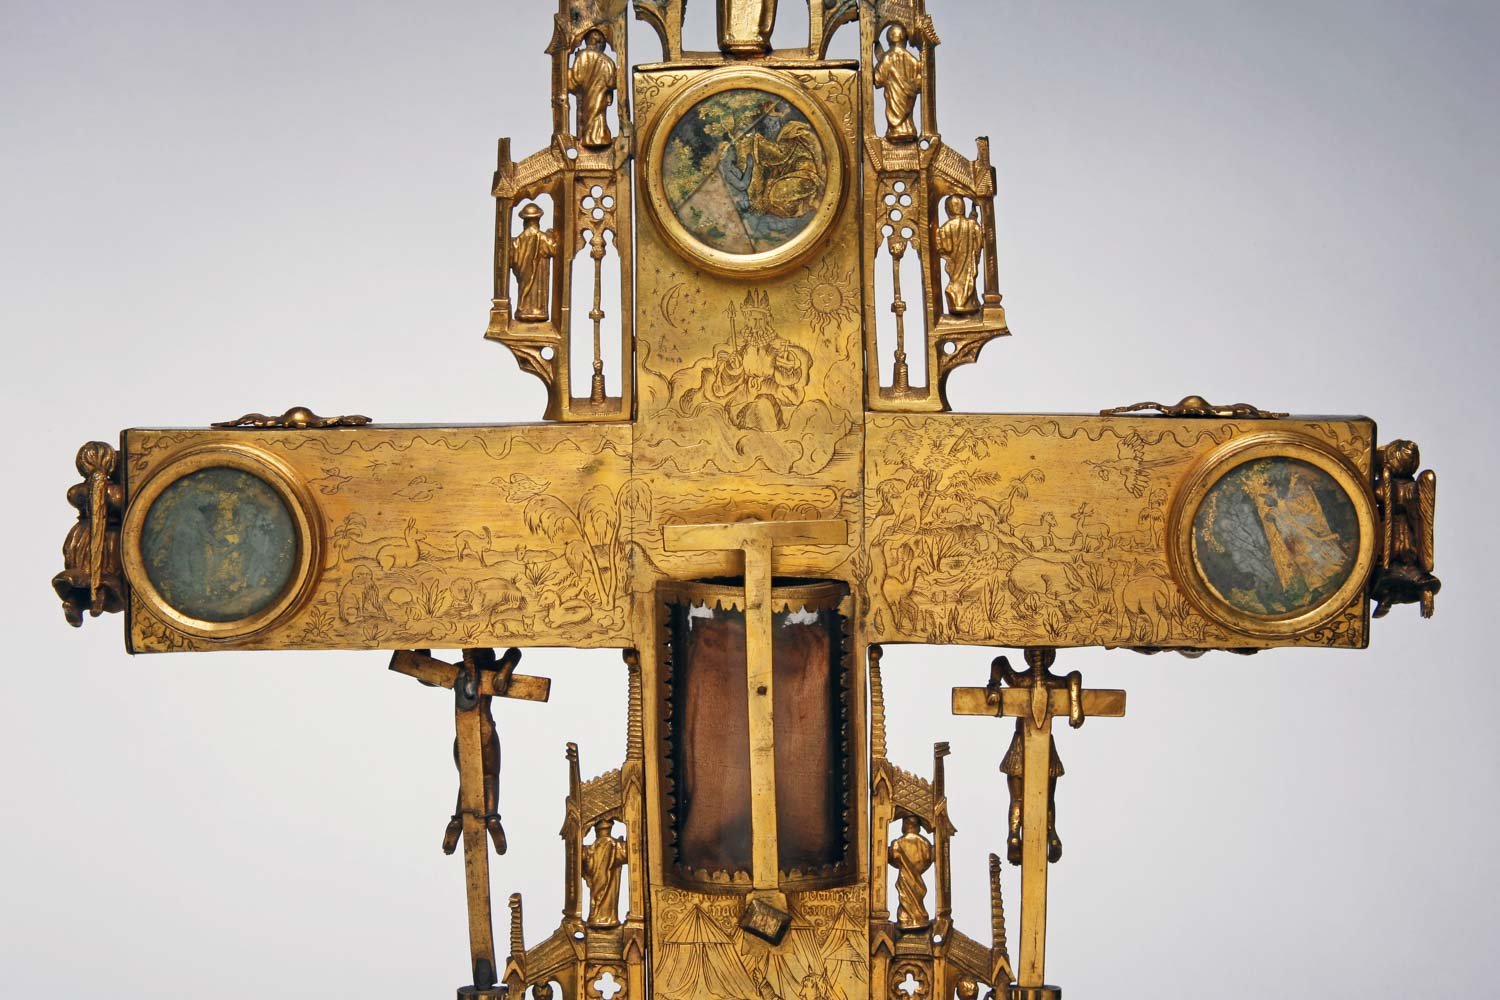 A sixteenth-century German reliquary in the Fitzwilliam collection